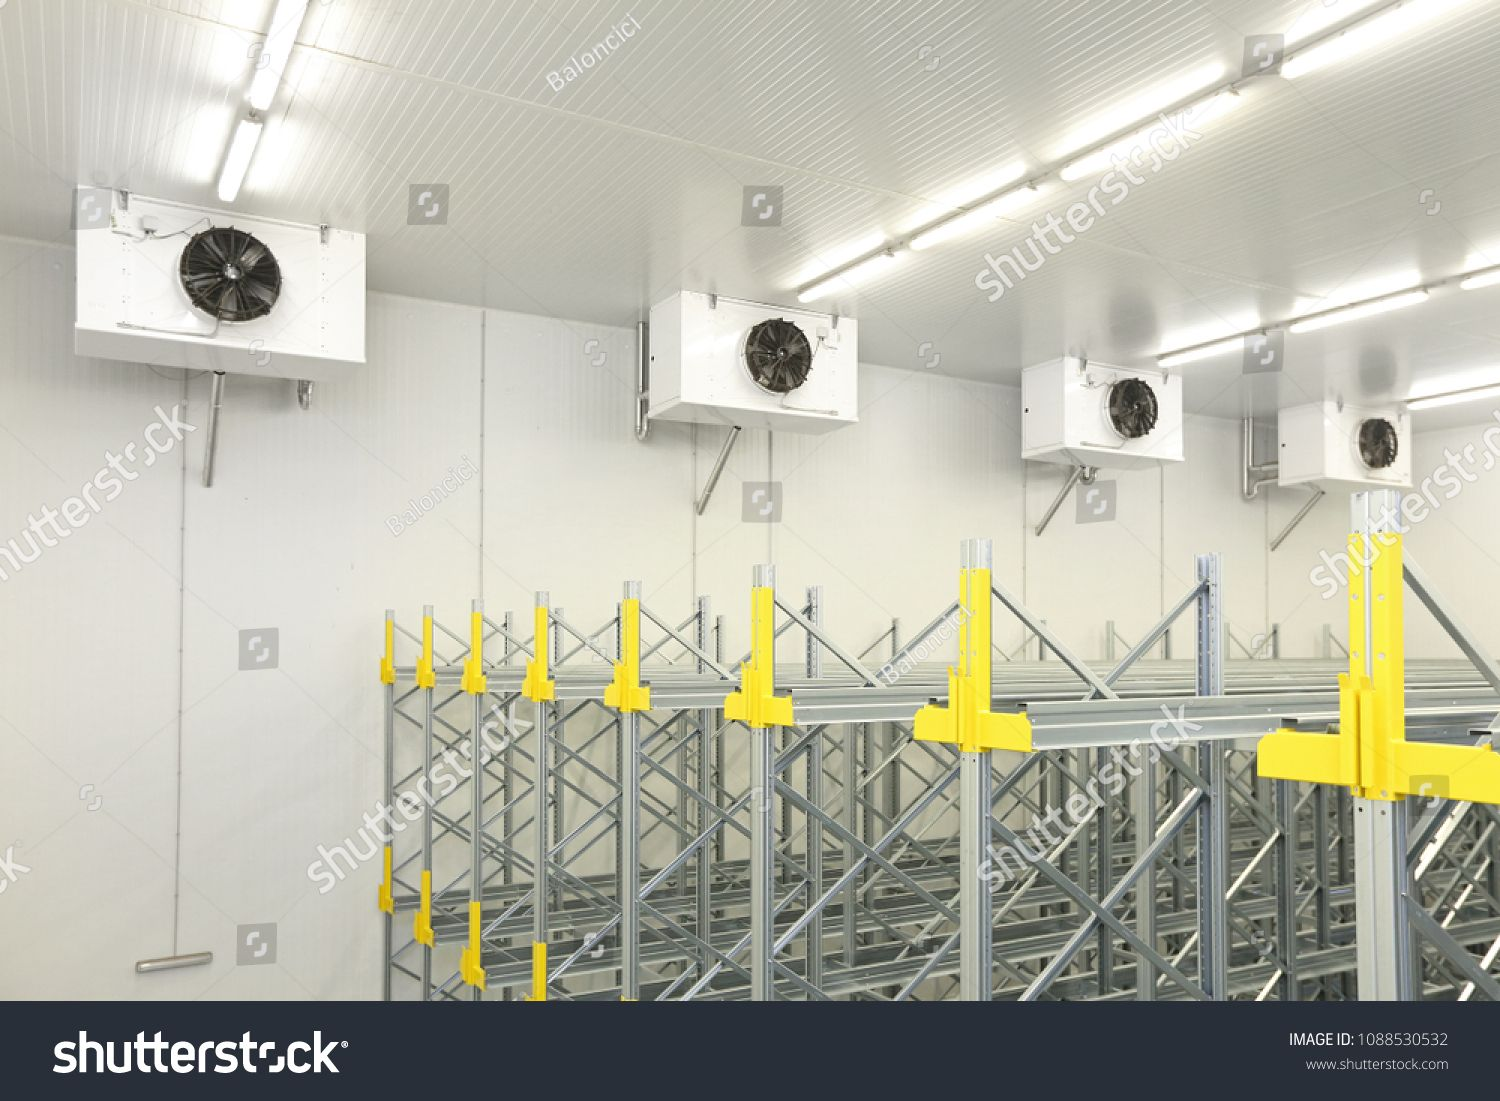 Industrial Air Conditioners Refrigeration Cooling System In